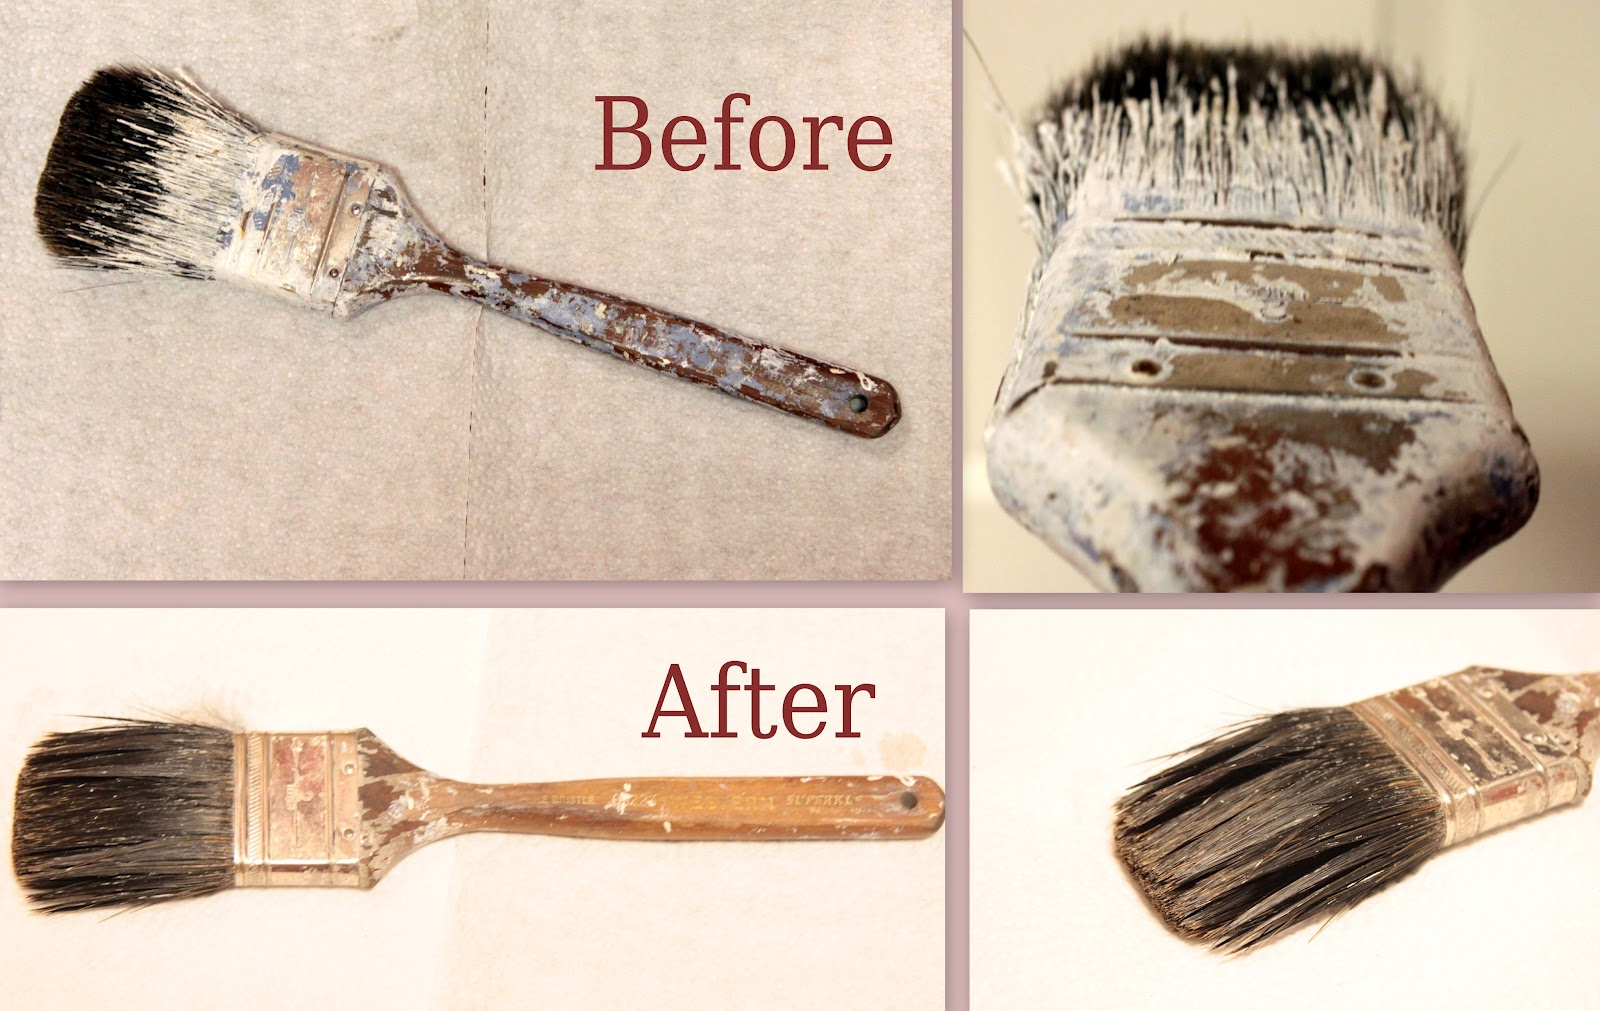 How to clean paintbrushes - How To Get Your Paintbrushes Clean Once The Paint Has Already Dried On Them